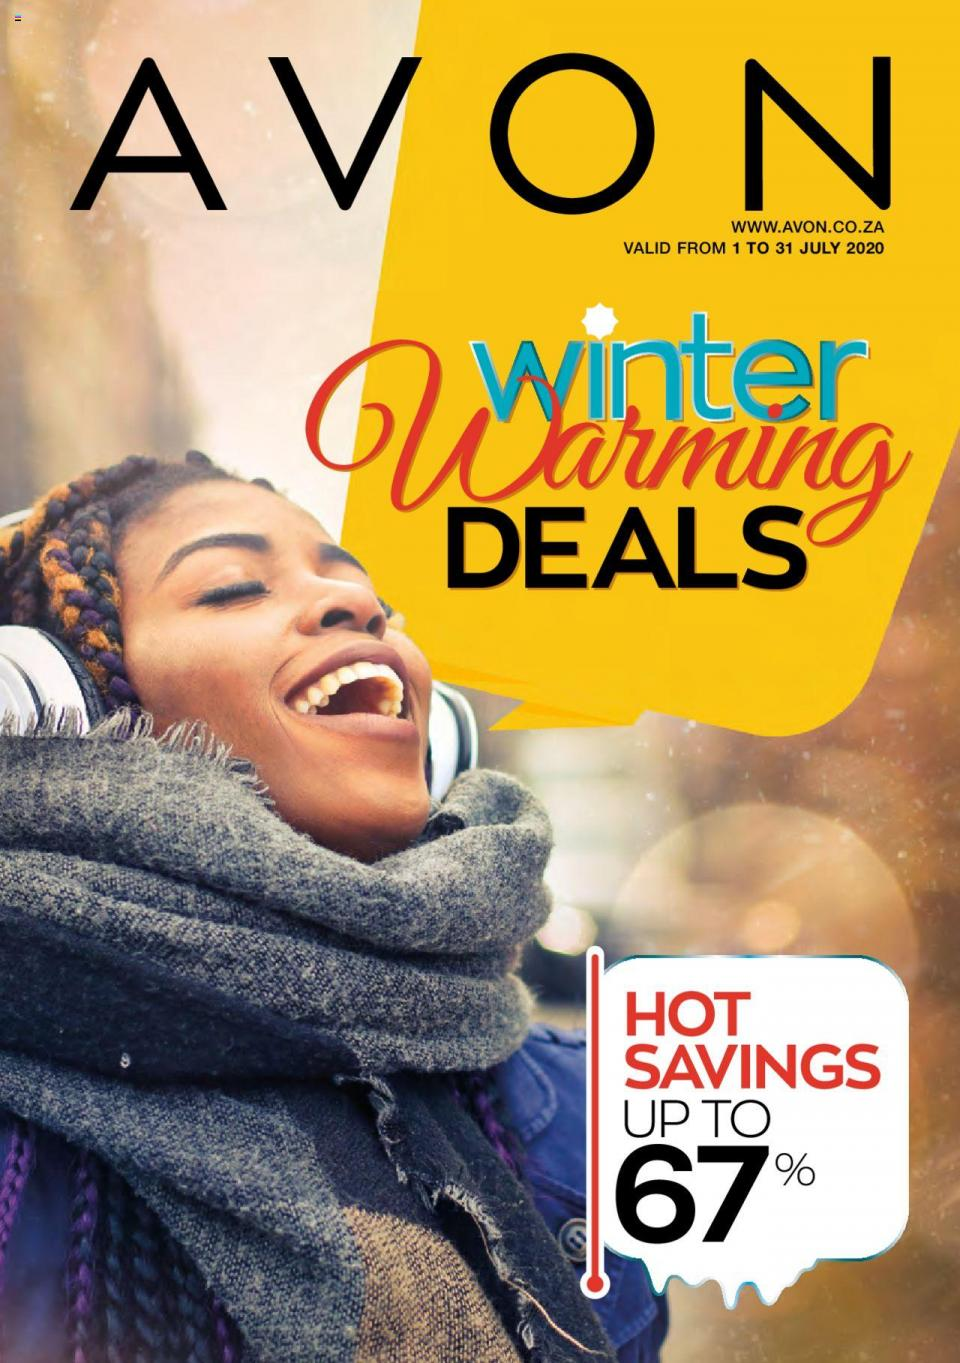 avon brochure winter warming deals 1 july 2020